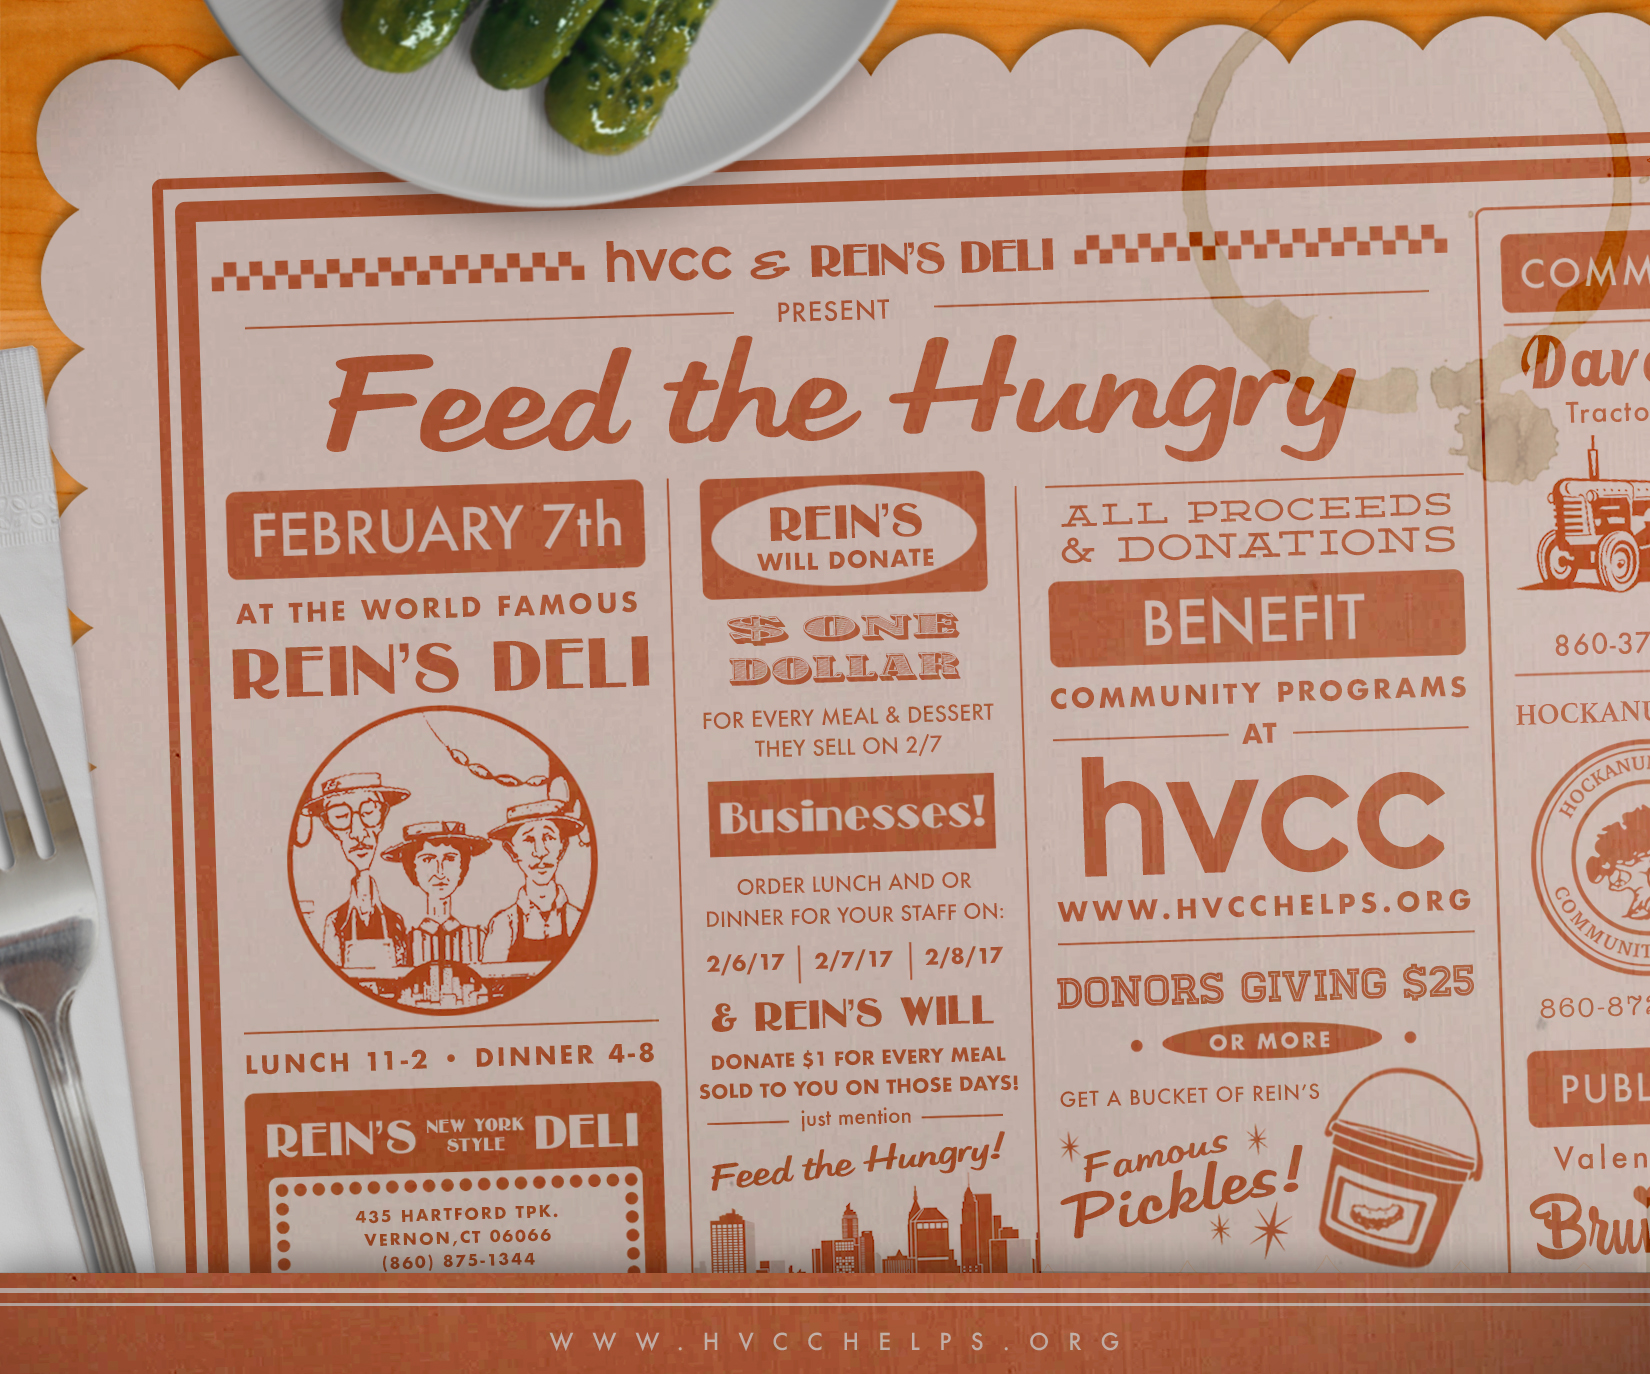 Feed the hungry charity event Promotion • Print/Web